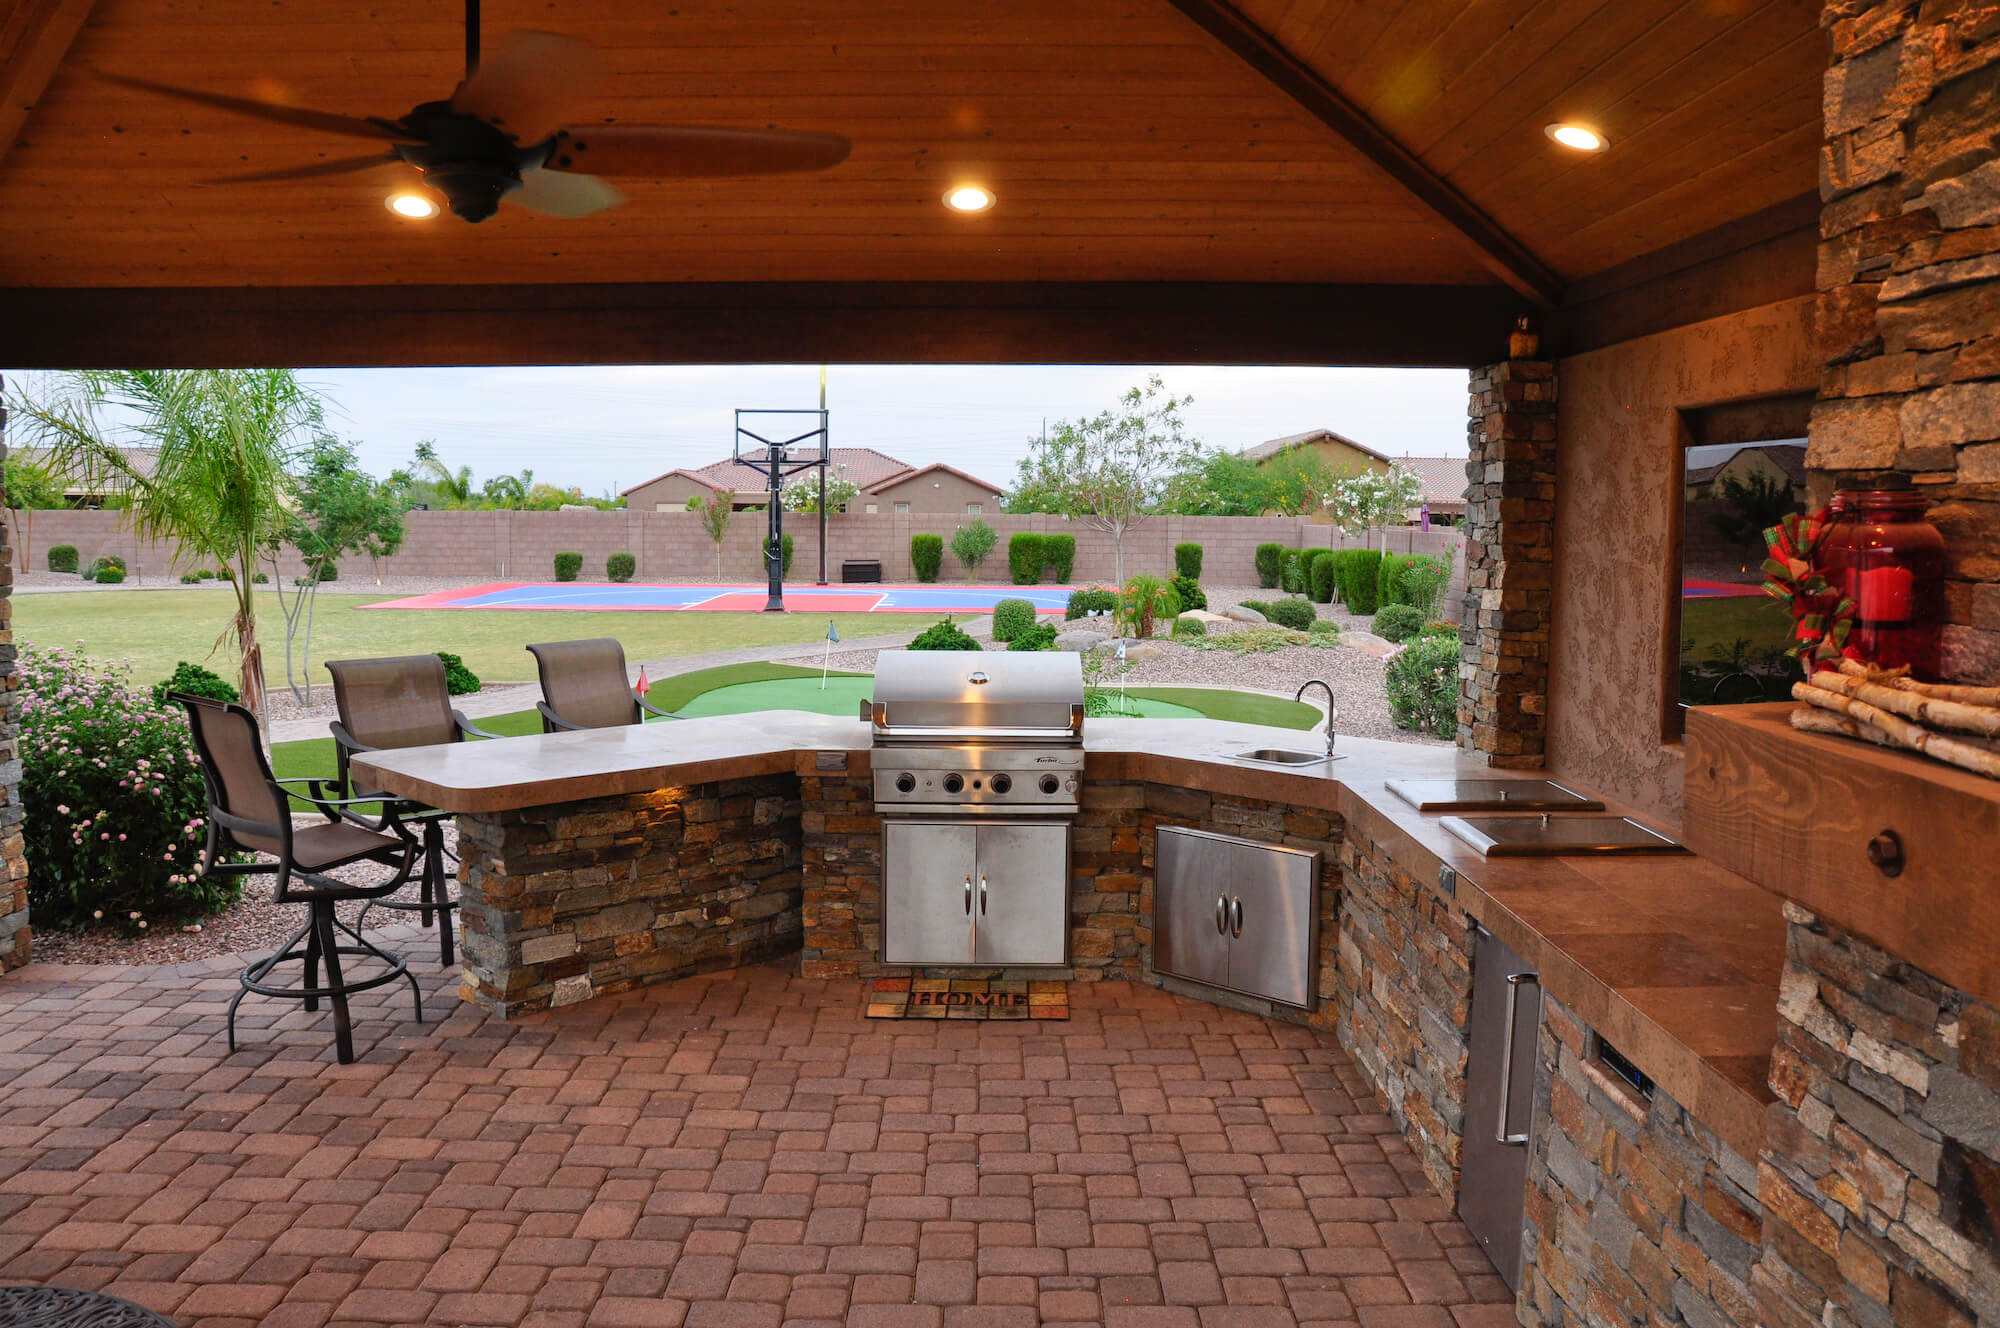 Which Outdoor Kitchen Design Fits Your Lifestyle? Inspo